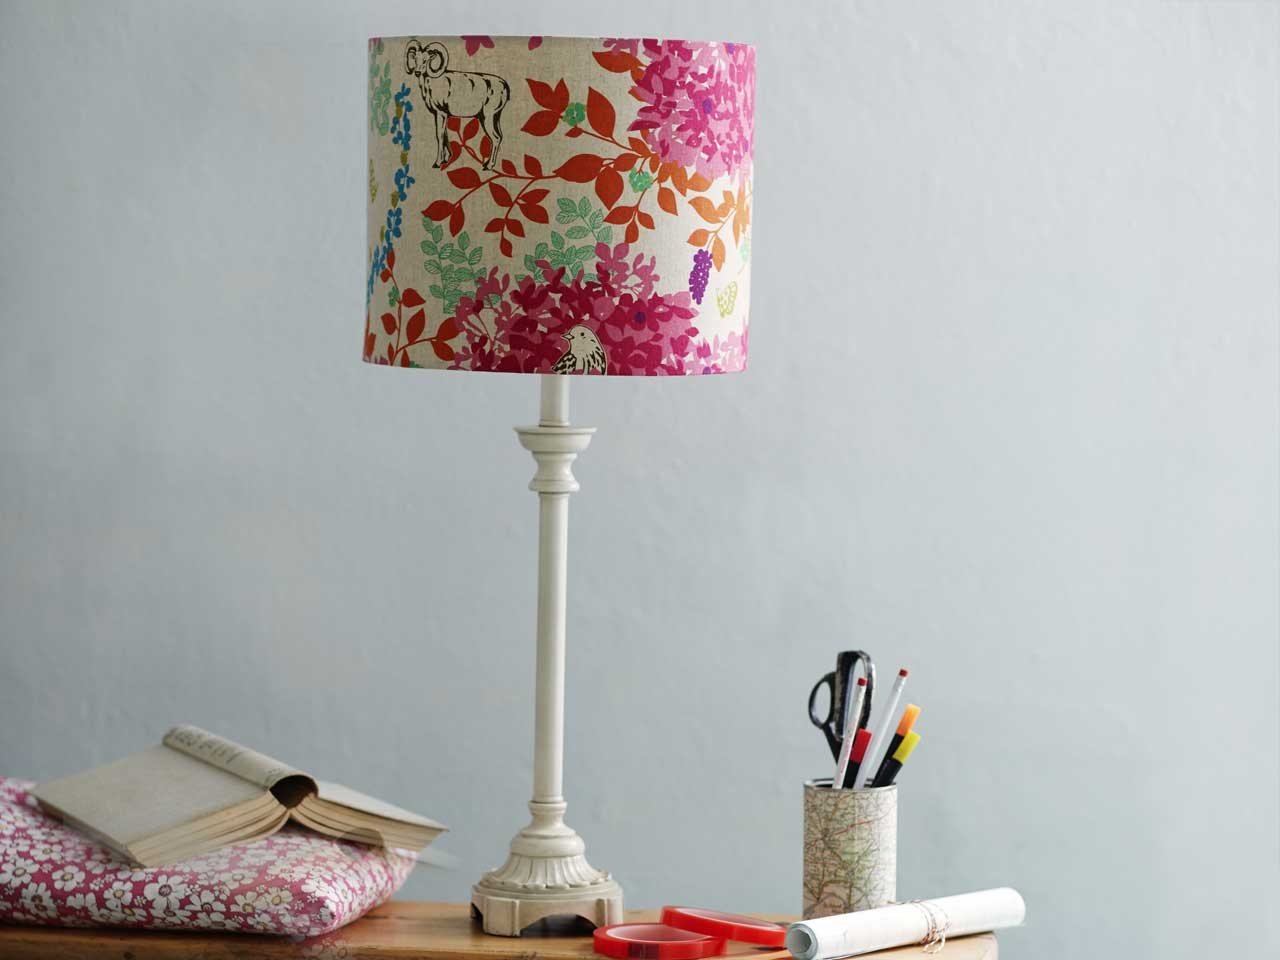 How to make a drum lampshade saga drum lampshade mozeypictures Gallery